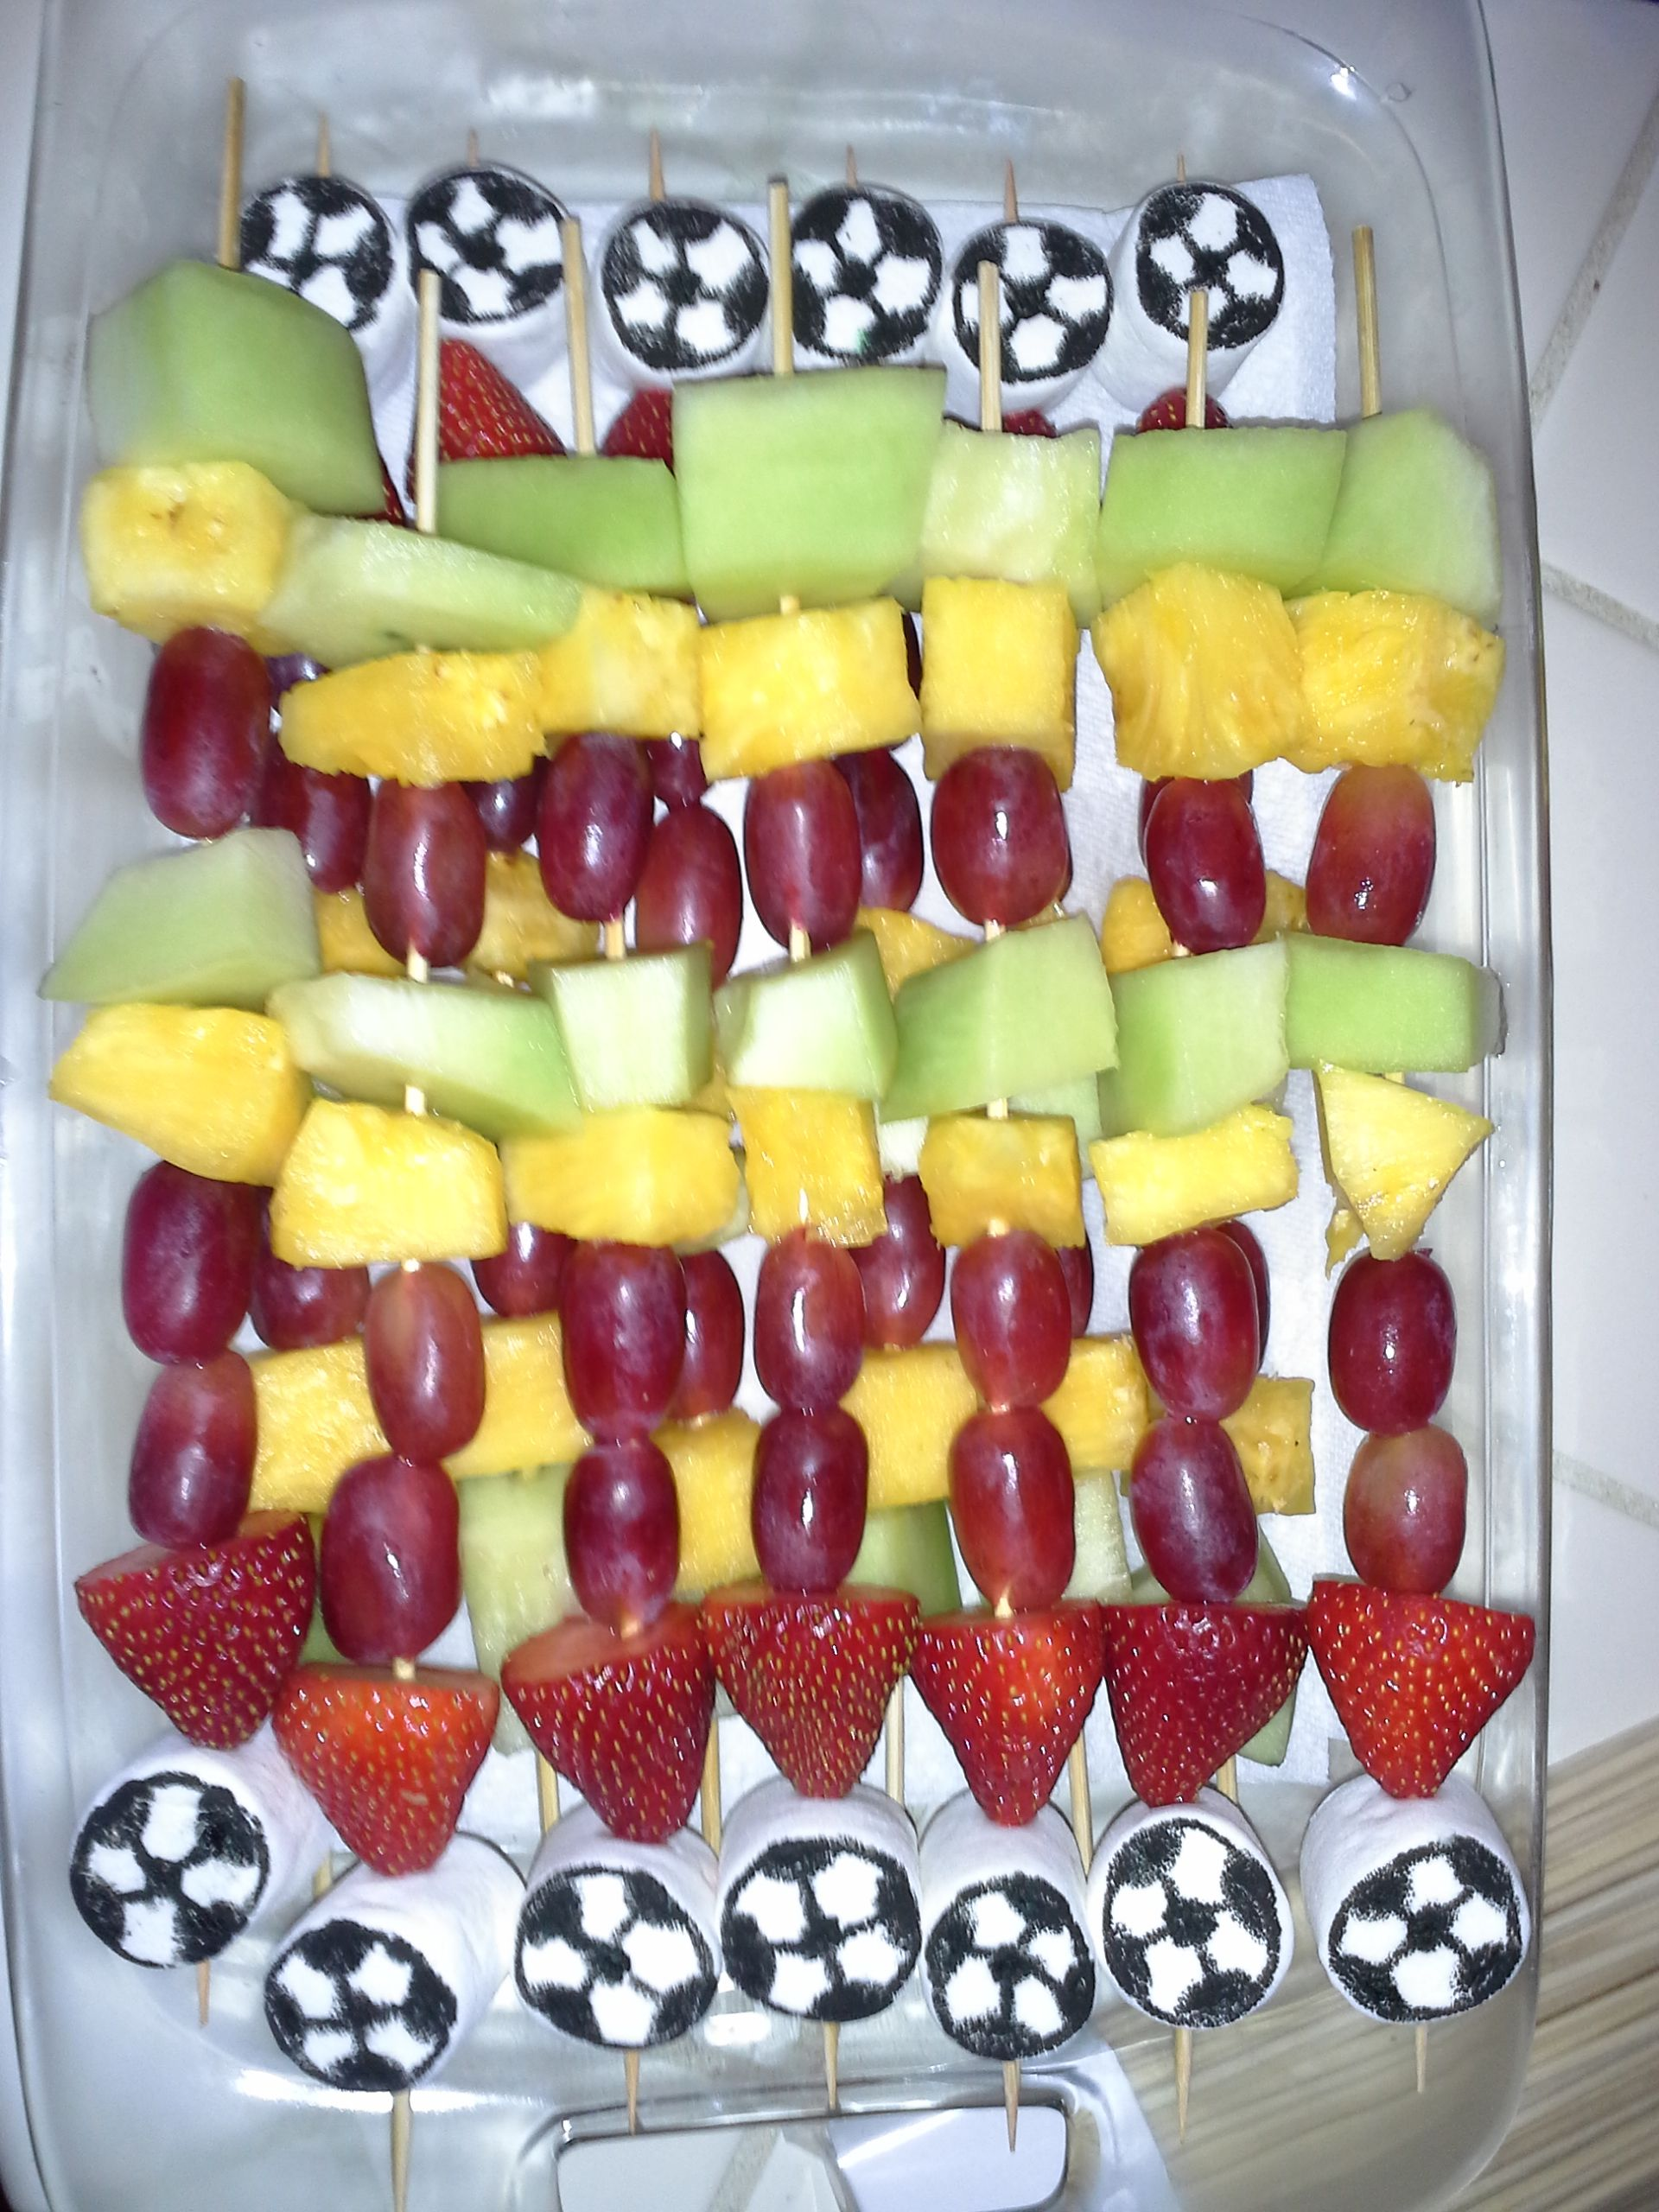 it s my week for soccer snacks the kids loved them and its healthy